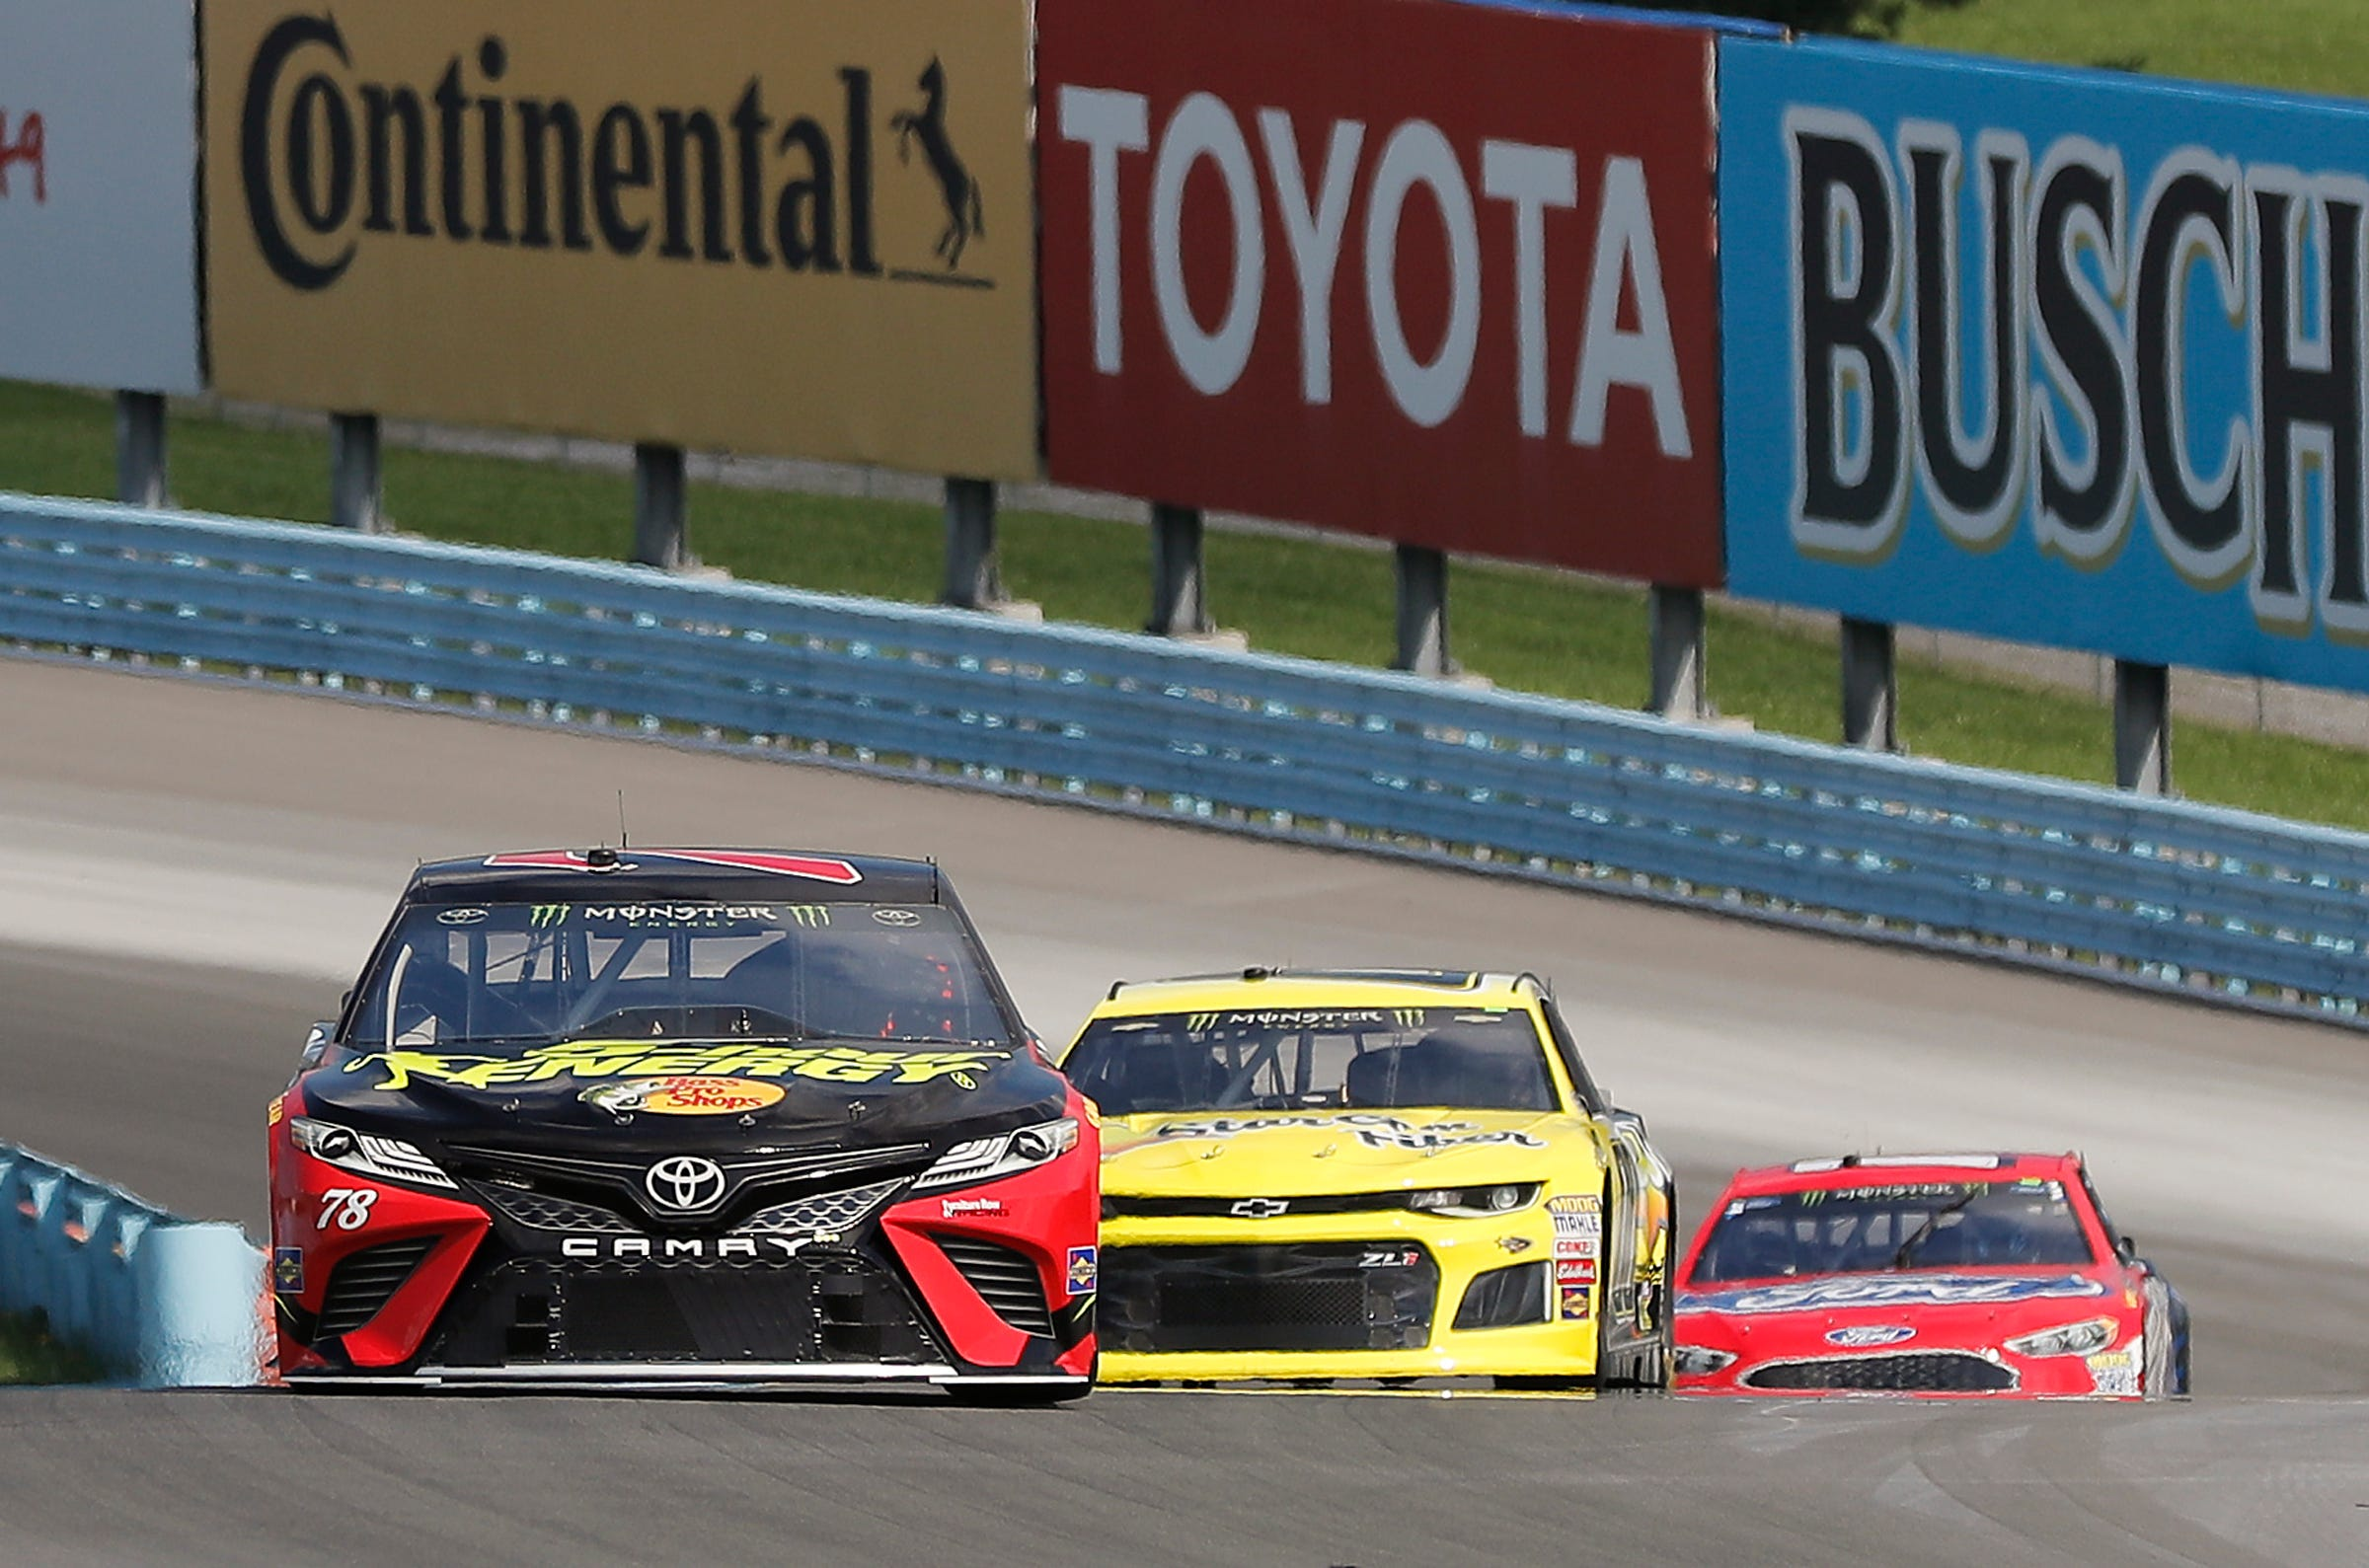 Truex chasing title as NASCAR's current king of the road